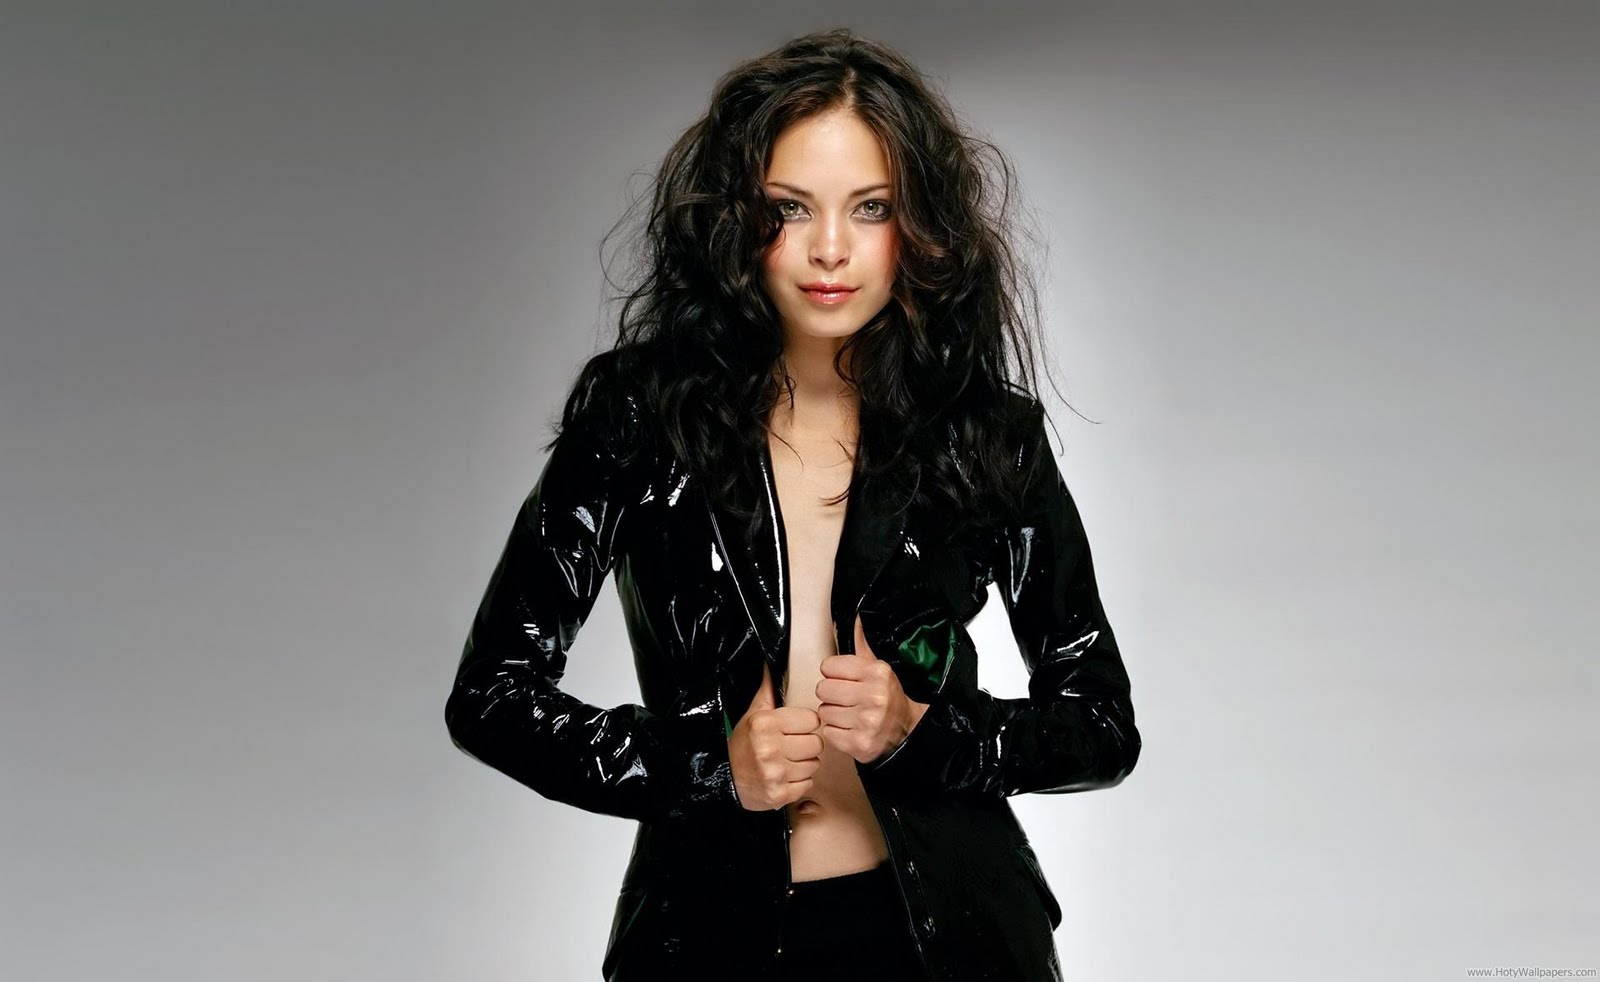 kristin kreuk hot pictures